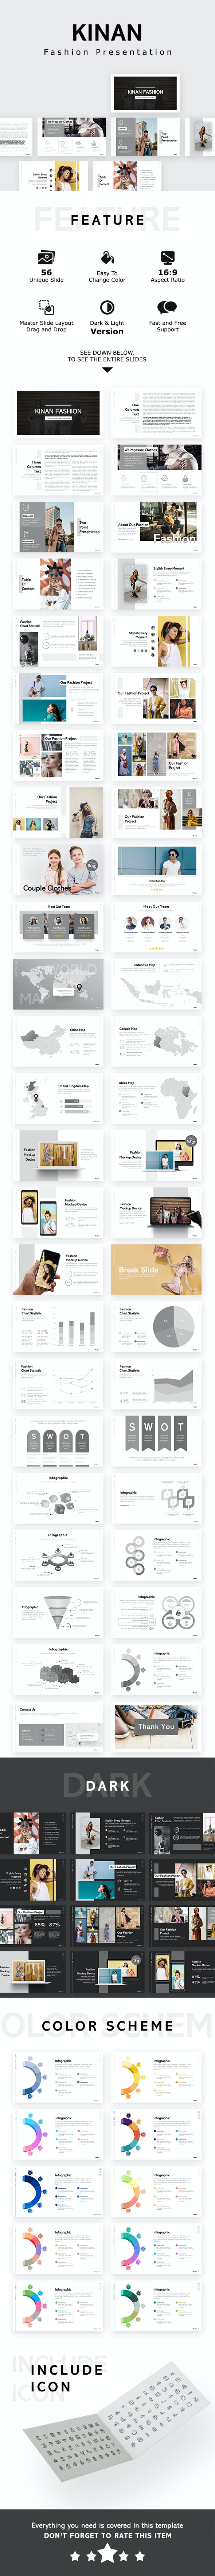 Kinan Fashion Keynote Template - Keynote Templates Presentation Templates